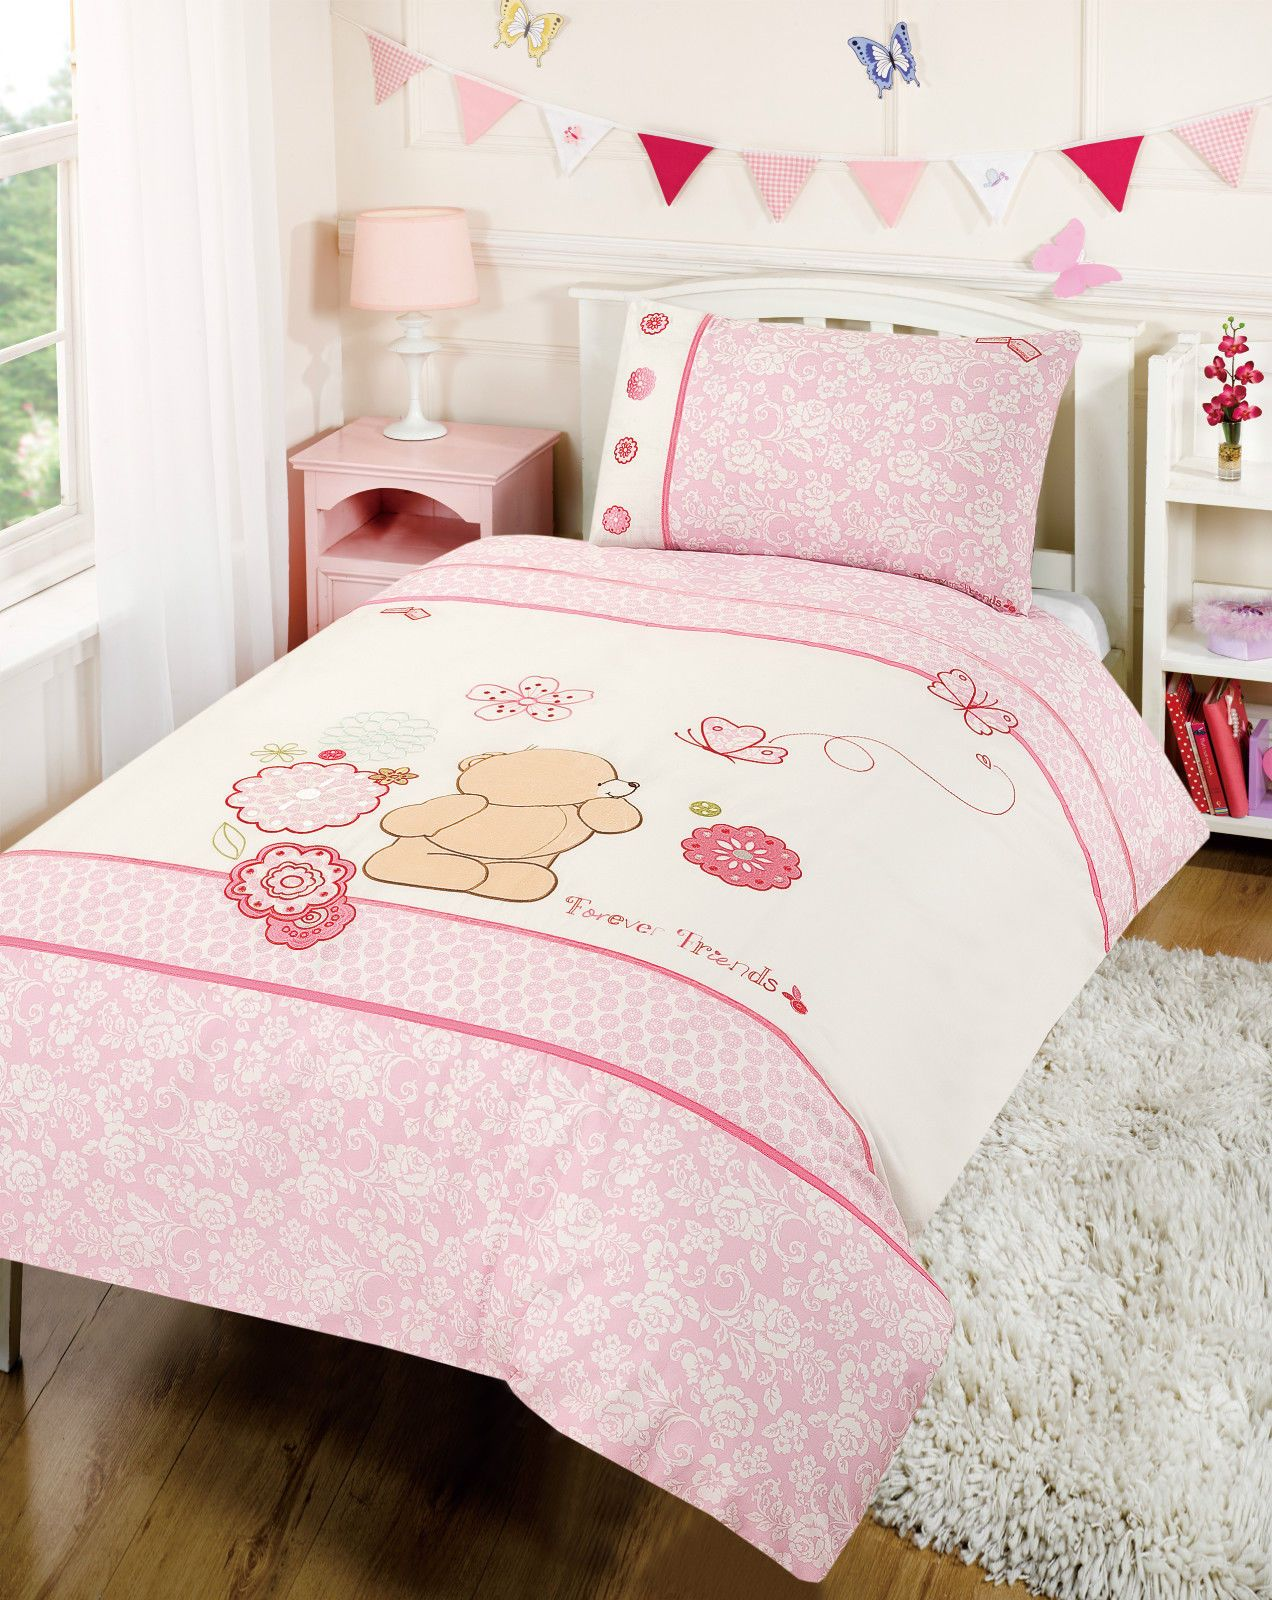 Little Bedding Forever Friends Window Valance by Little Bedding